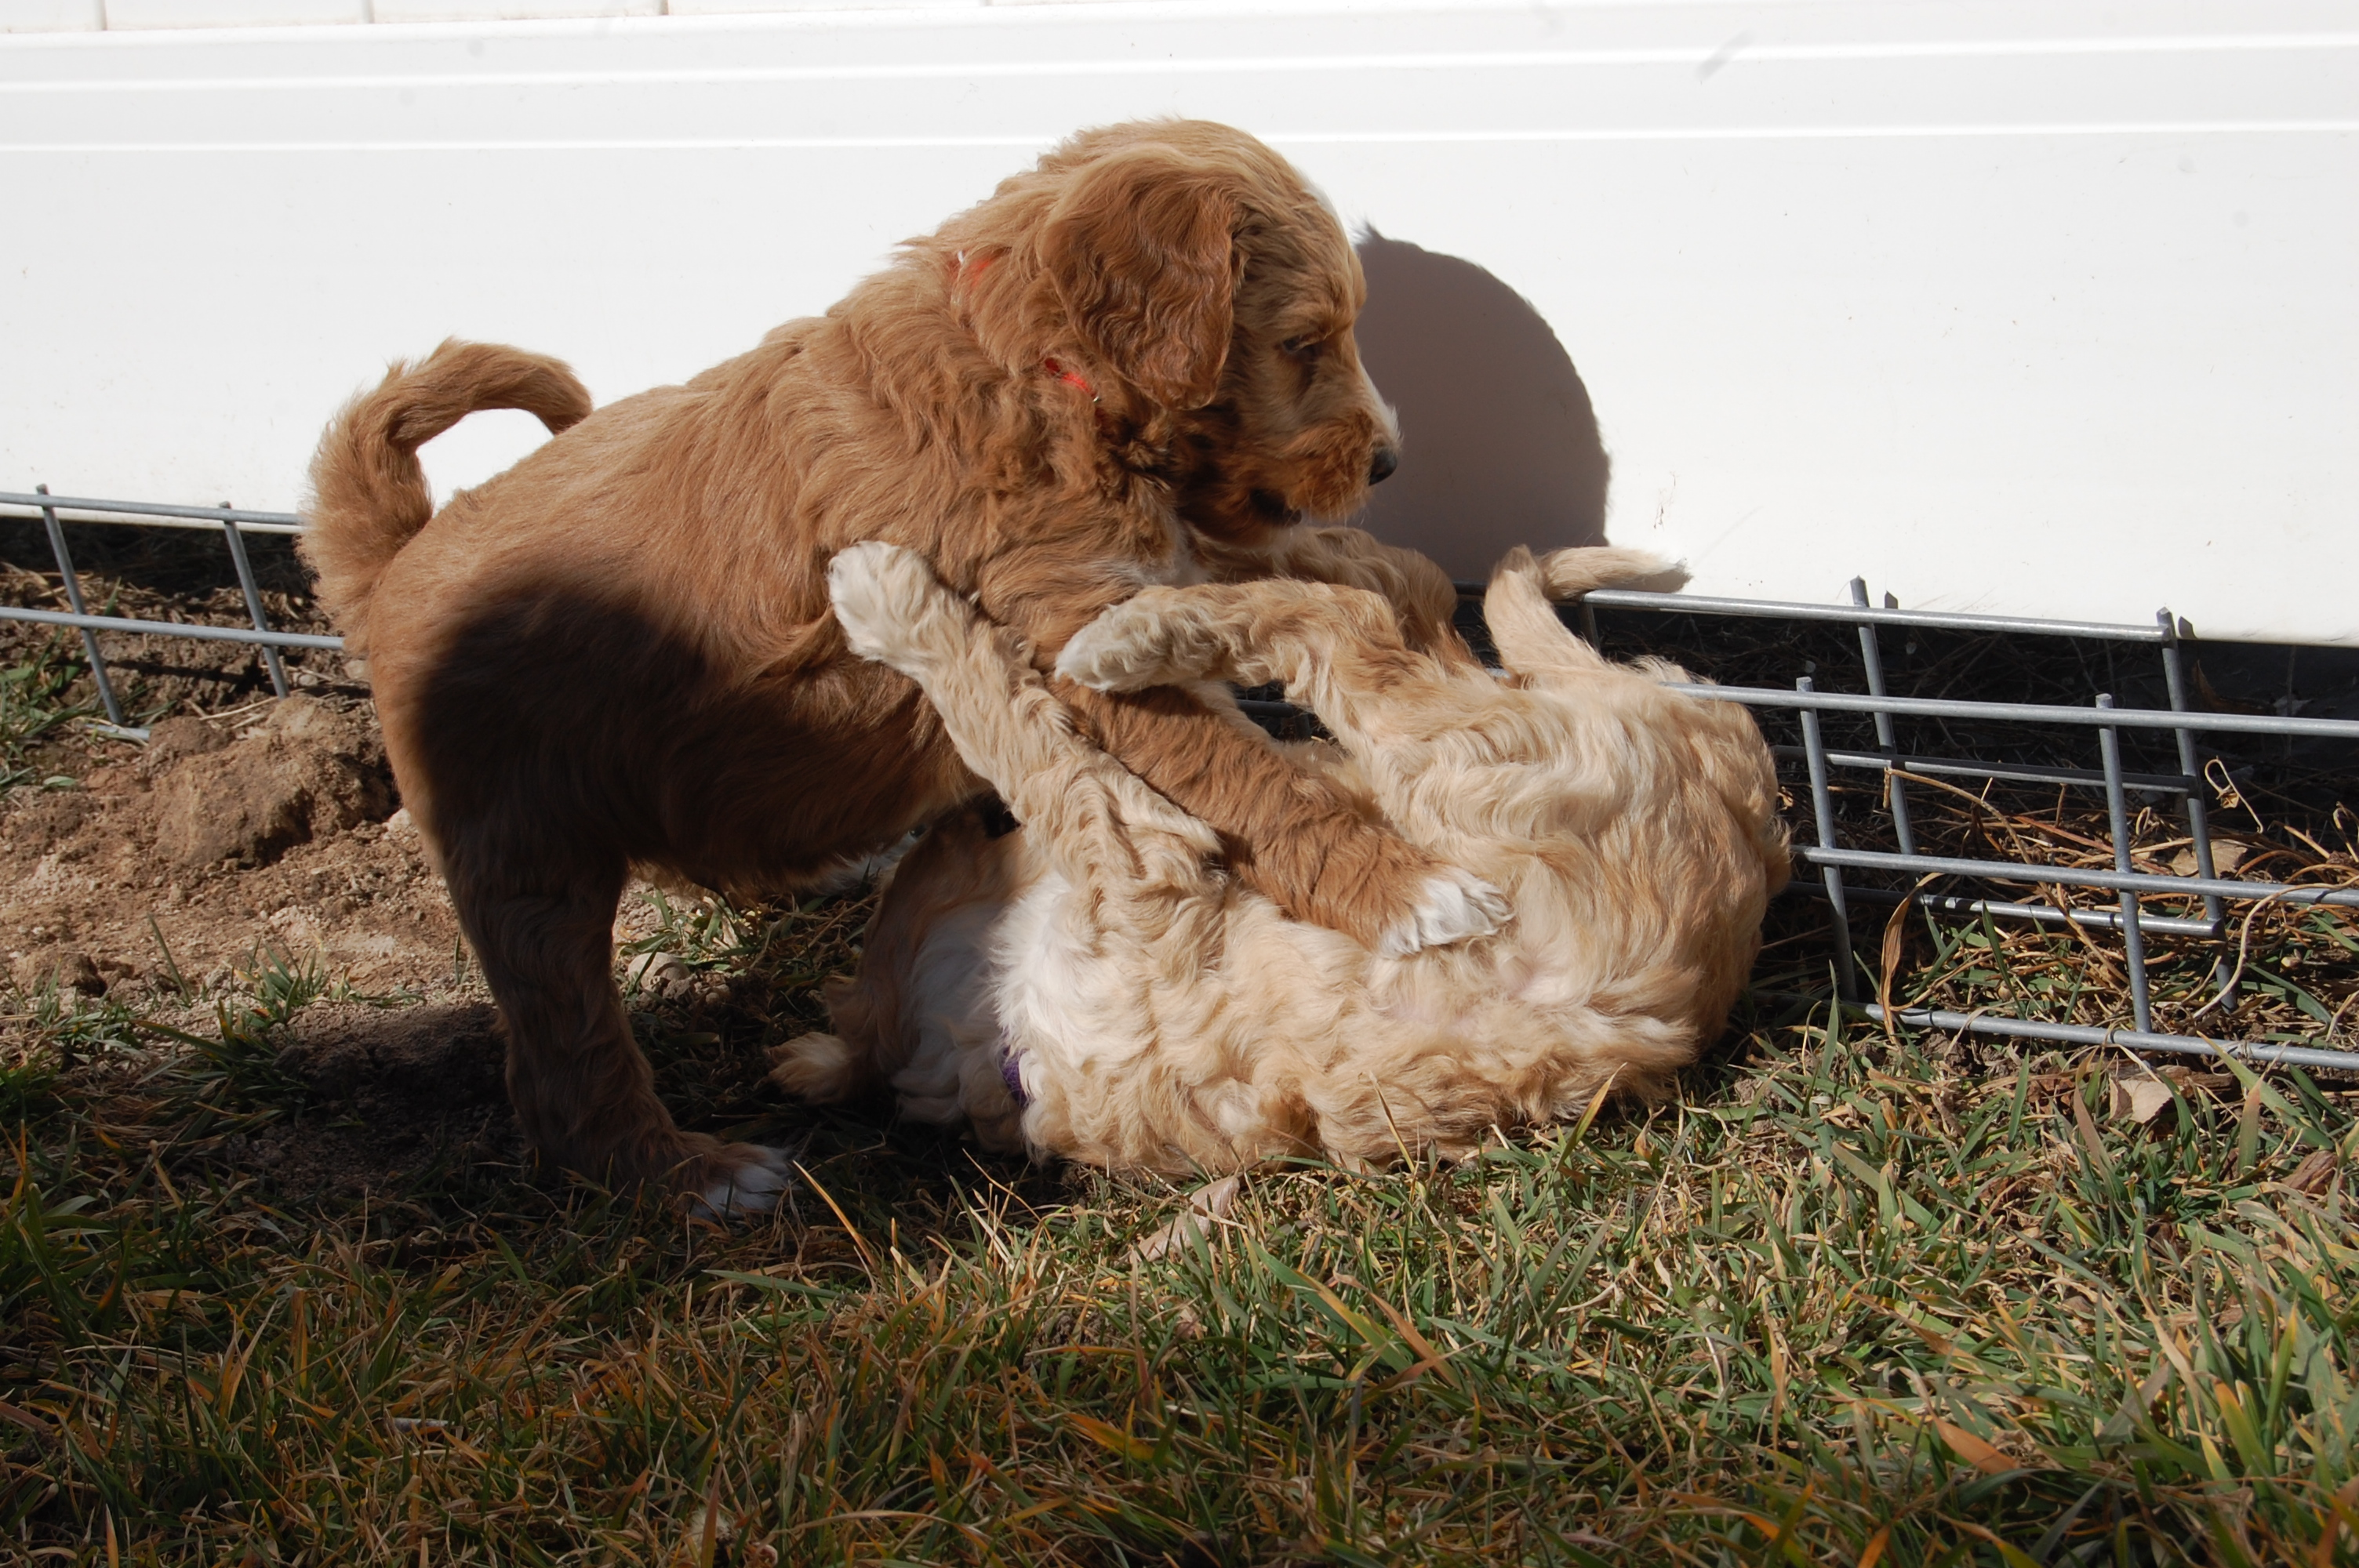 puppies love to wrestle